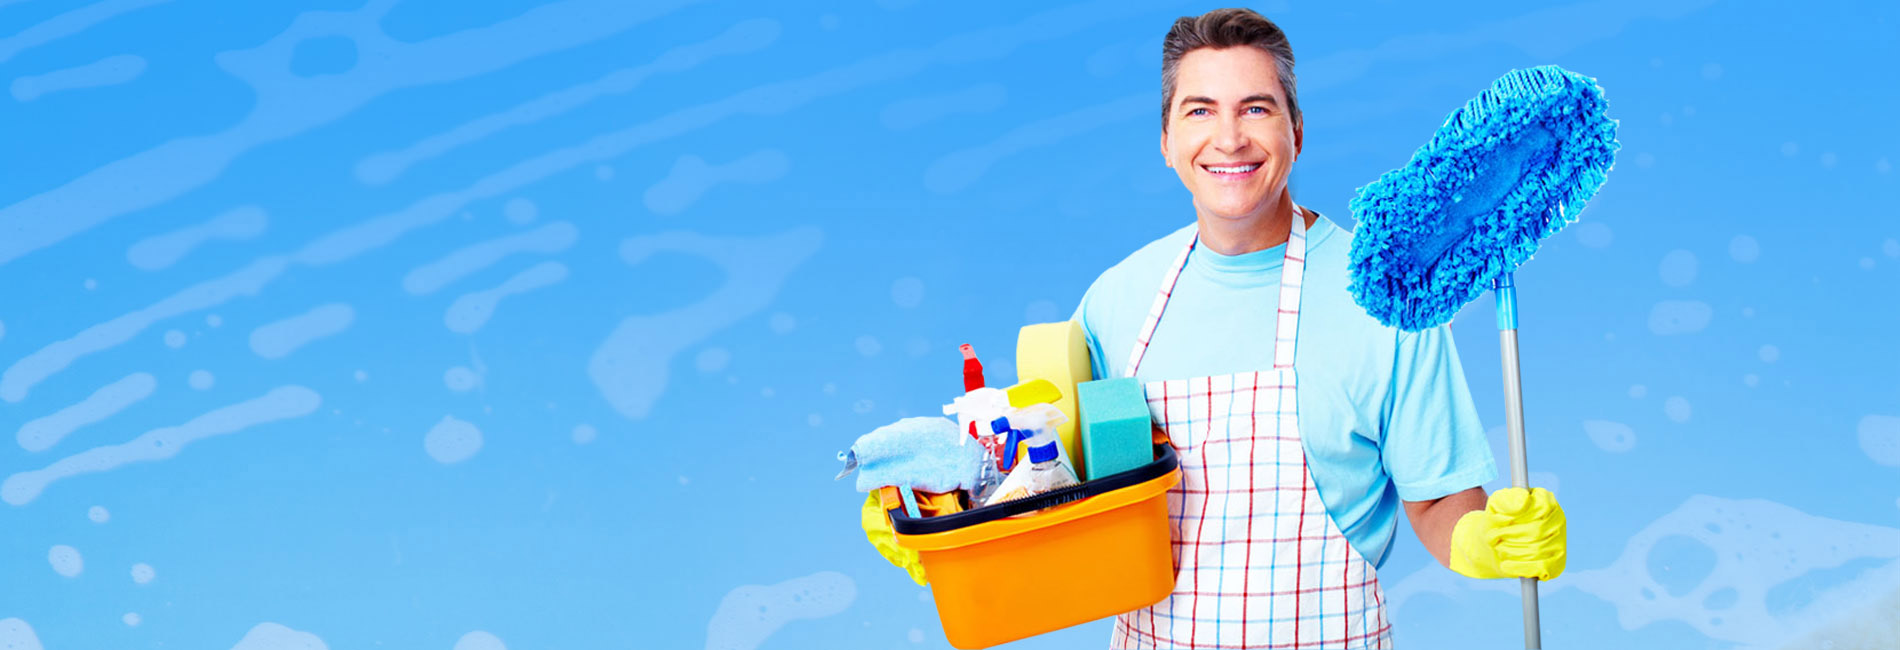 Man Carrying Janitorial Cleaning Supplies